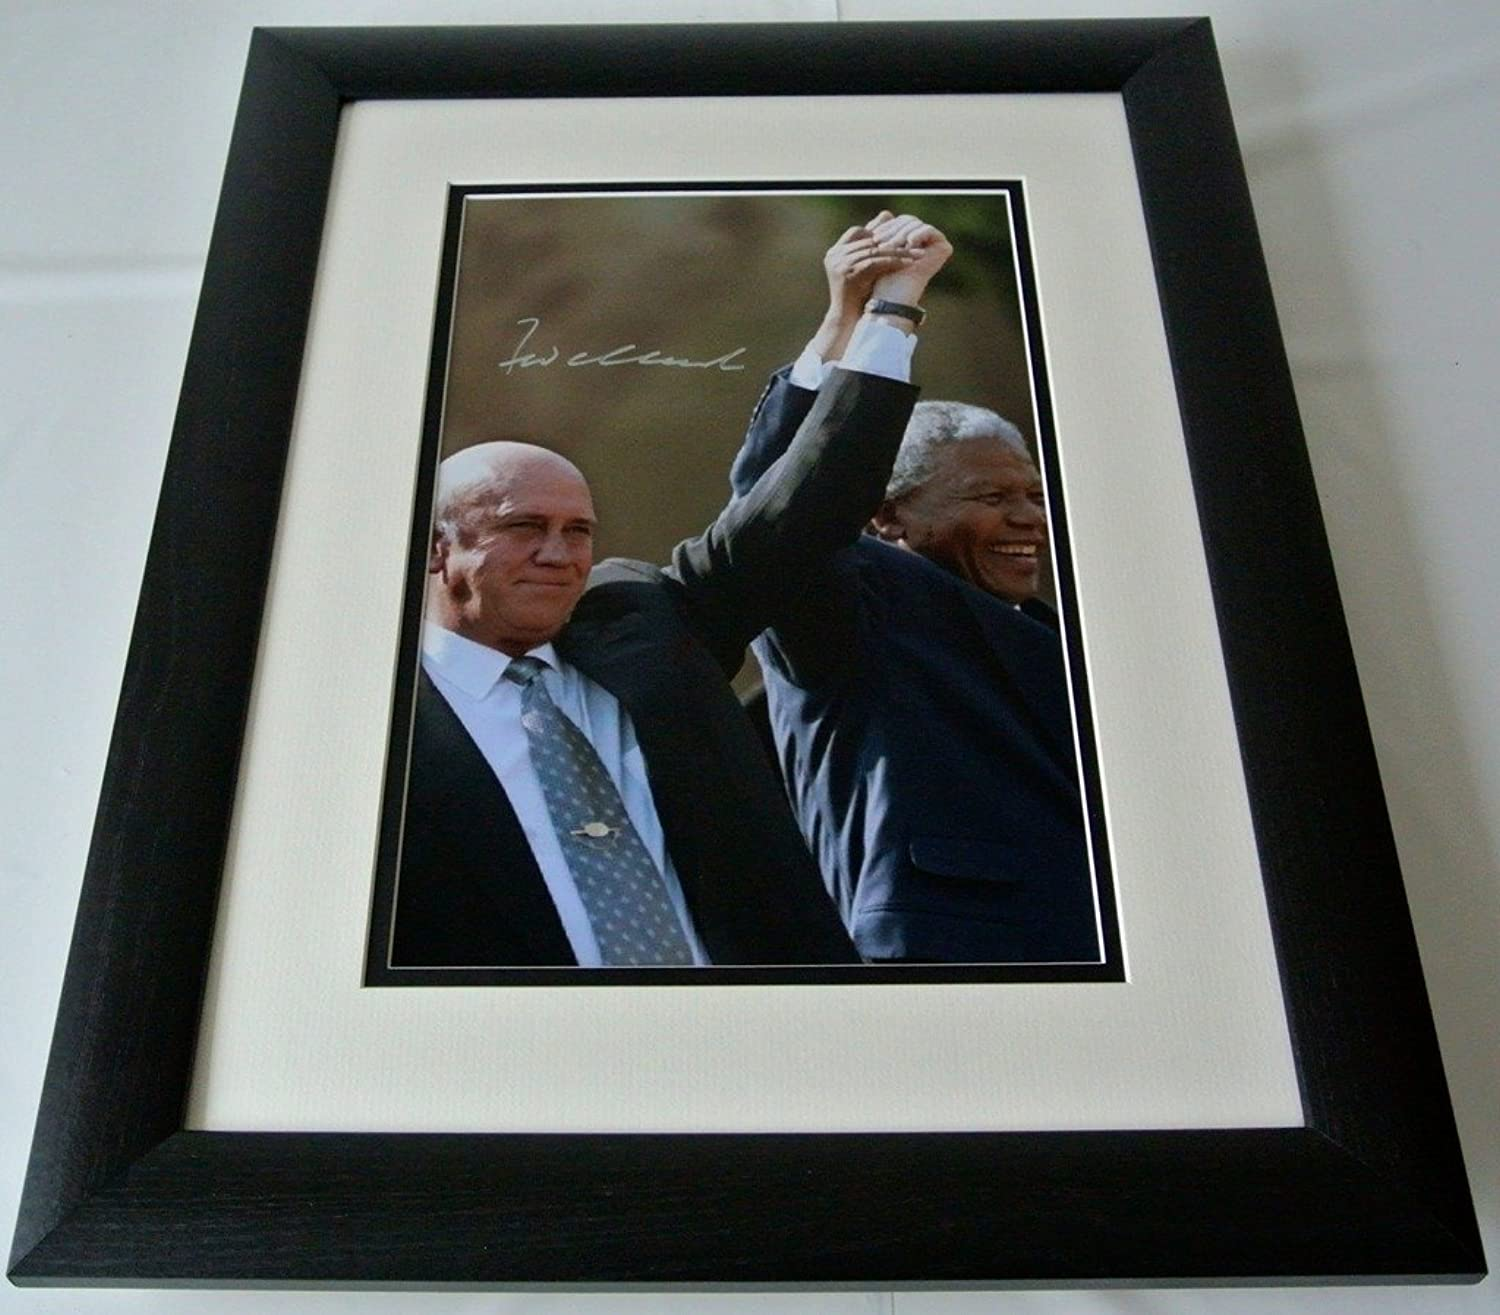 Sportagraphs FW de Klerk SIGNED FRAMED Photo Autograph 16x12 LARGE display South Africa & COA perfect gift